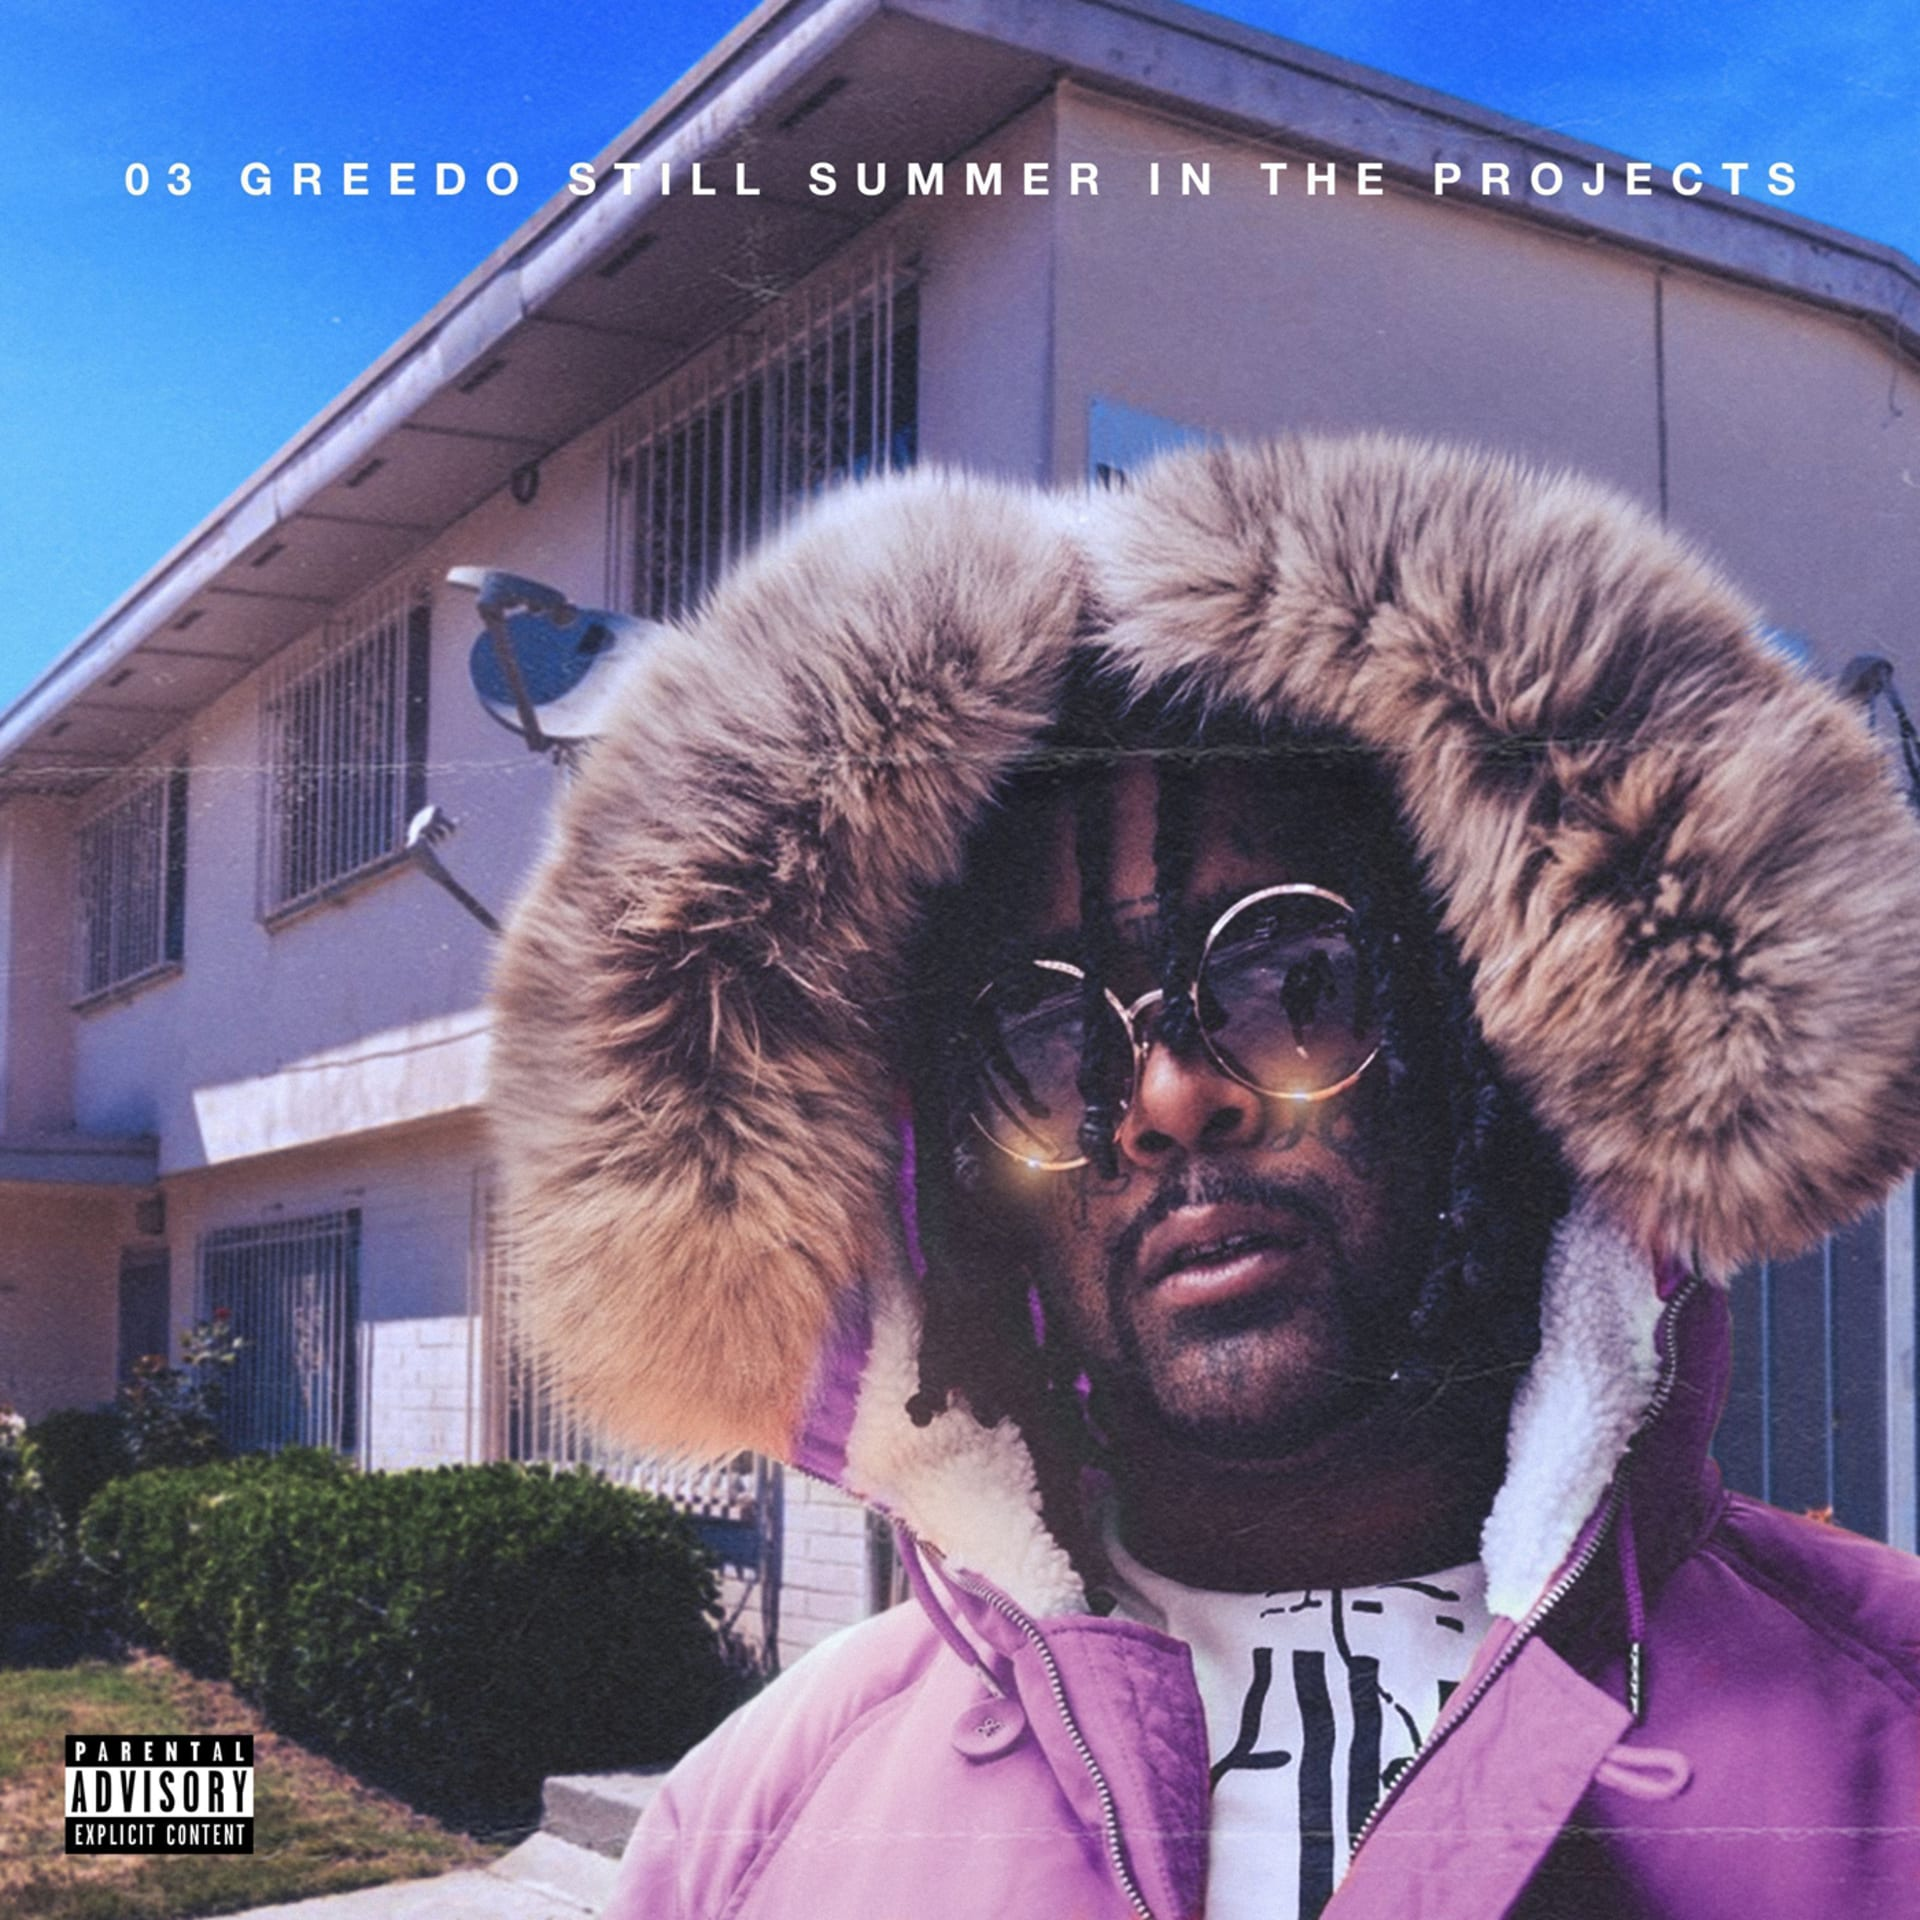 03-greedo-still-summer-in-the-projects